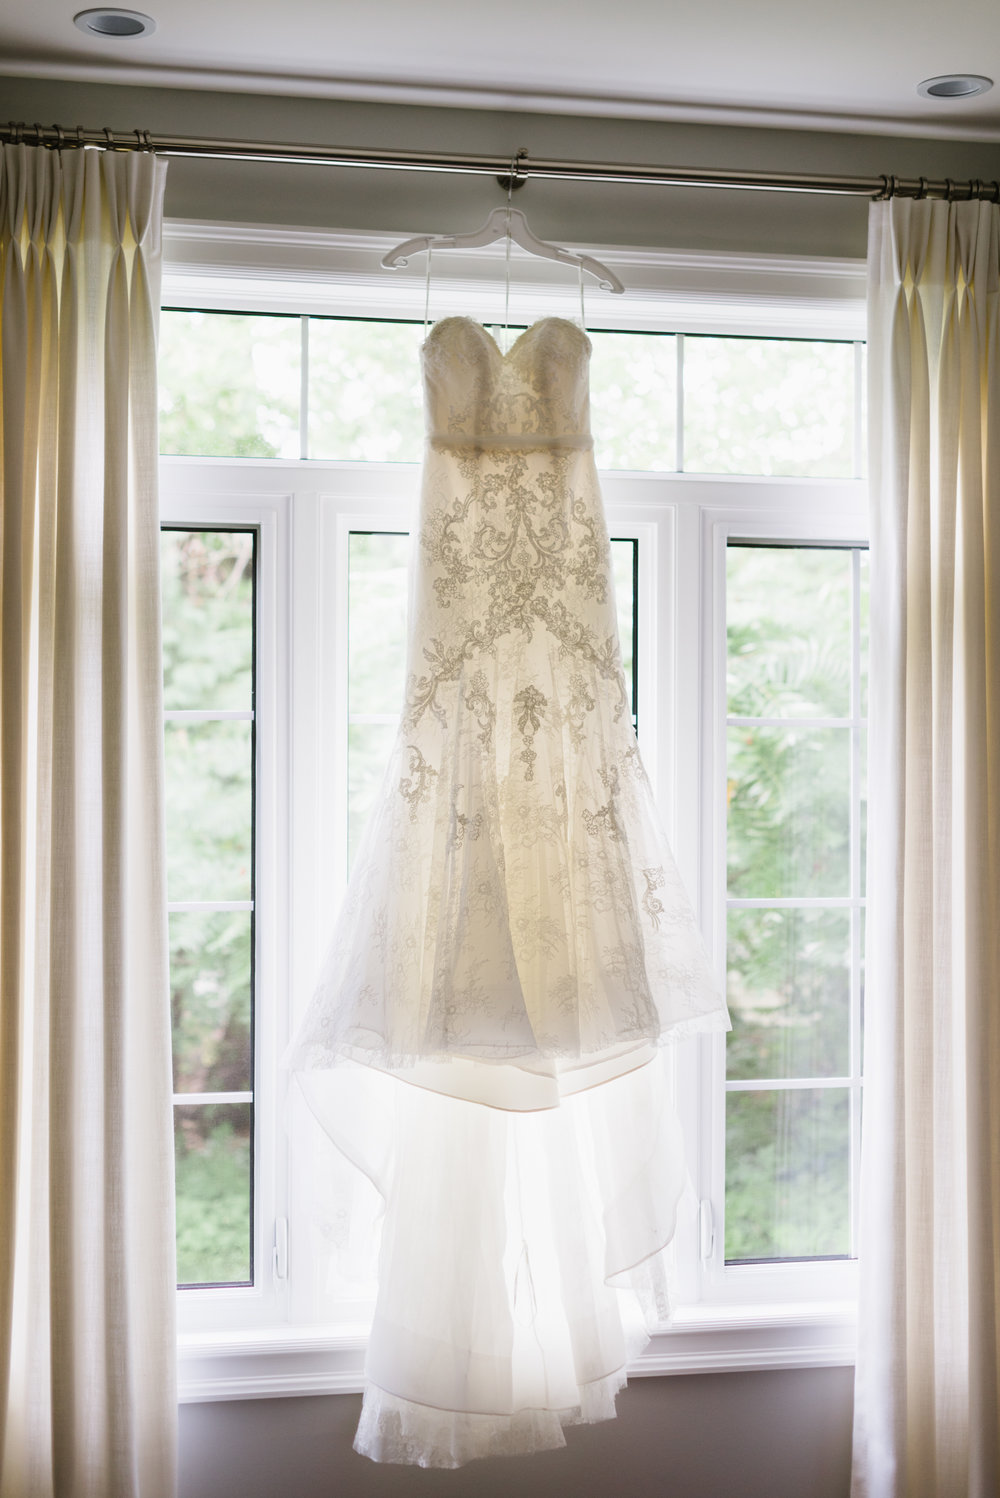 bride-dress-mermaid-lace-gown-window